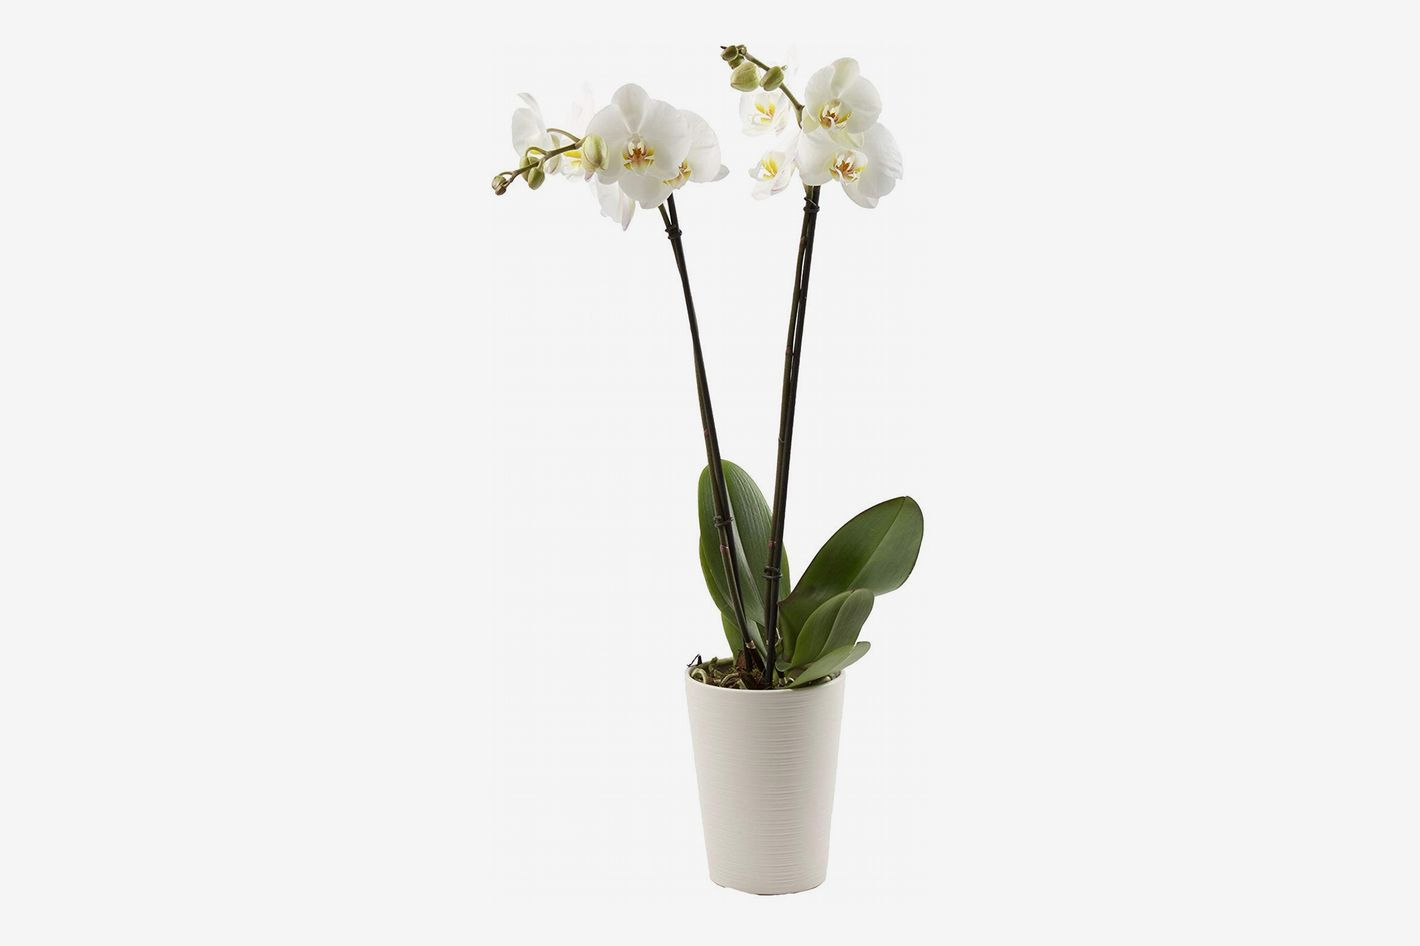 "Color Orchids Live Blooming Double Stem Phalaenopsis Orchid Plant in Ceramic Pot, 20"" x 24"", White Blooms"